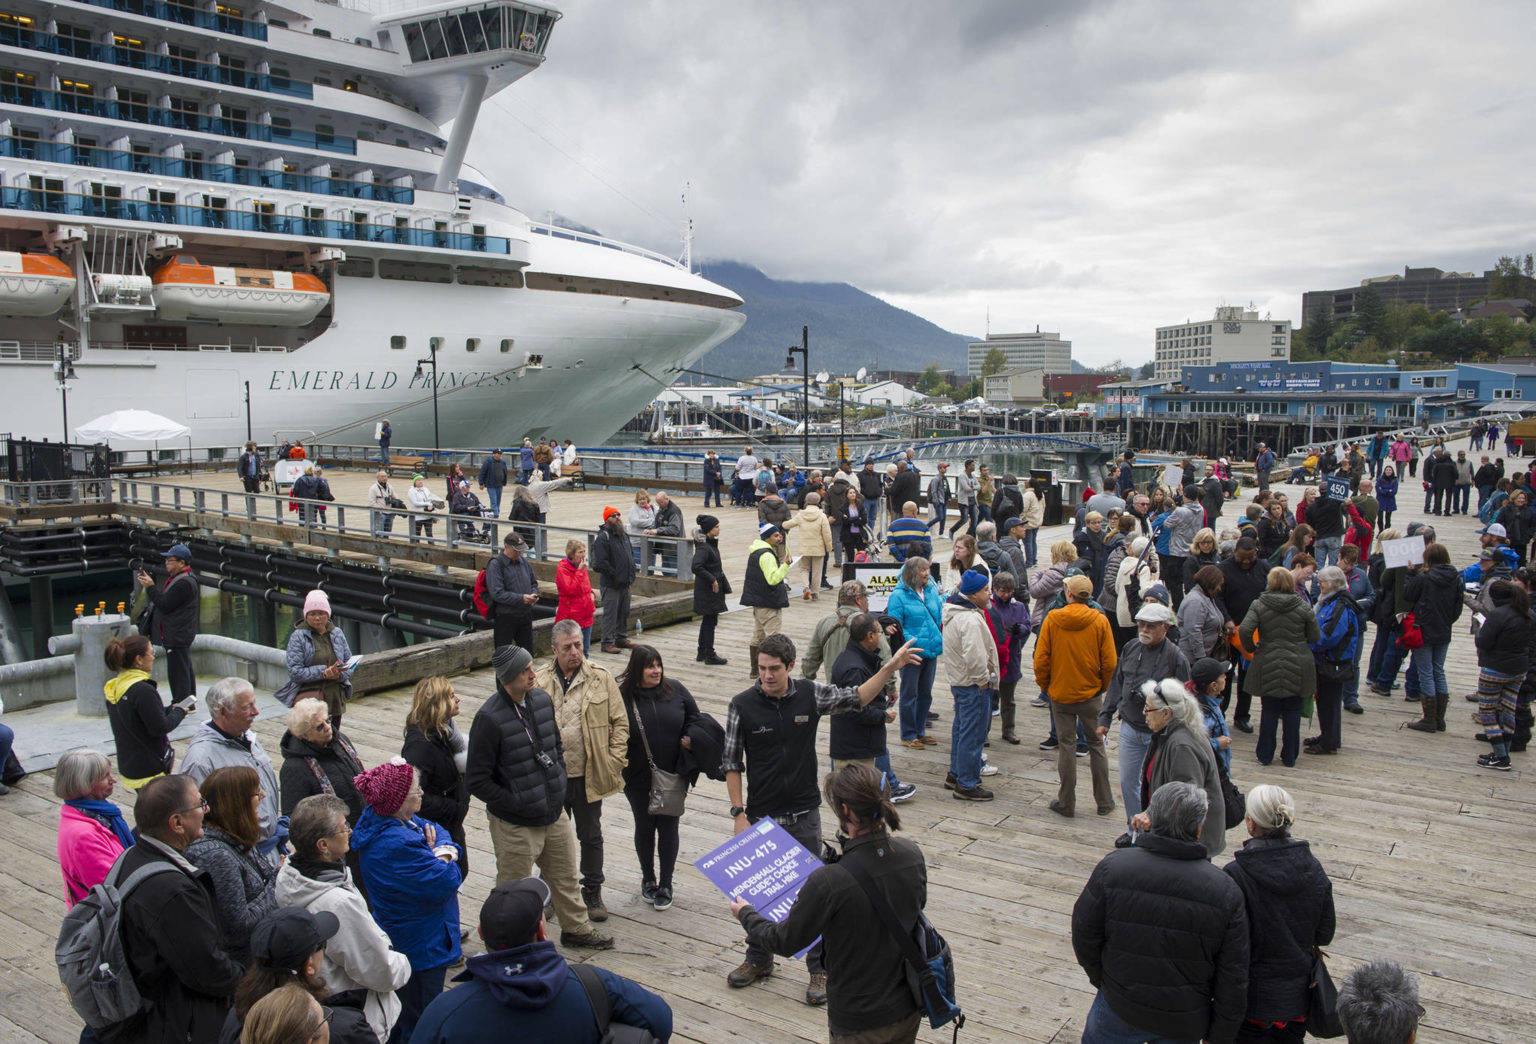 Cruise ship passengers arrive at Juneau, Alaska in 2018. Cruise lines have begun booking passengers for trips from Seattle to Alaska as early as this July, bypassing B.C. ports that are not allowed to have visitors until March 2022 under a Canadian COVID-19 restrictions. (Michael Penn/Juneau Empire)